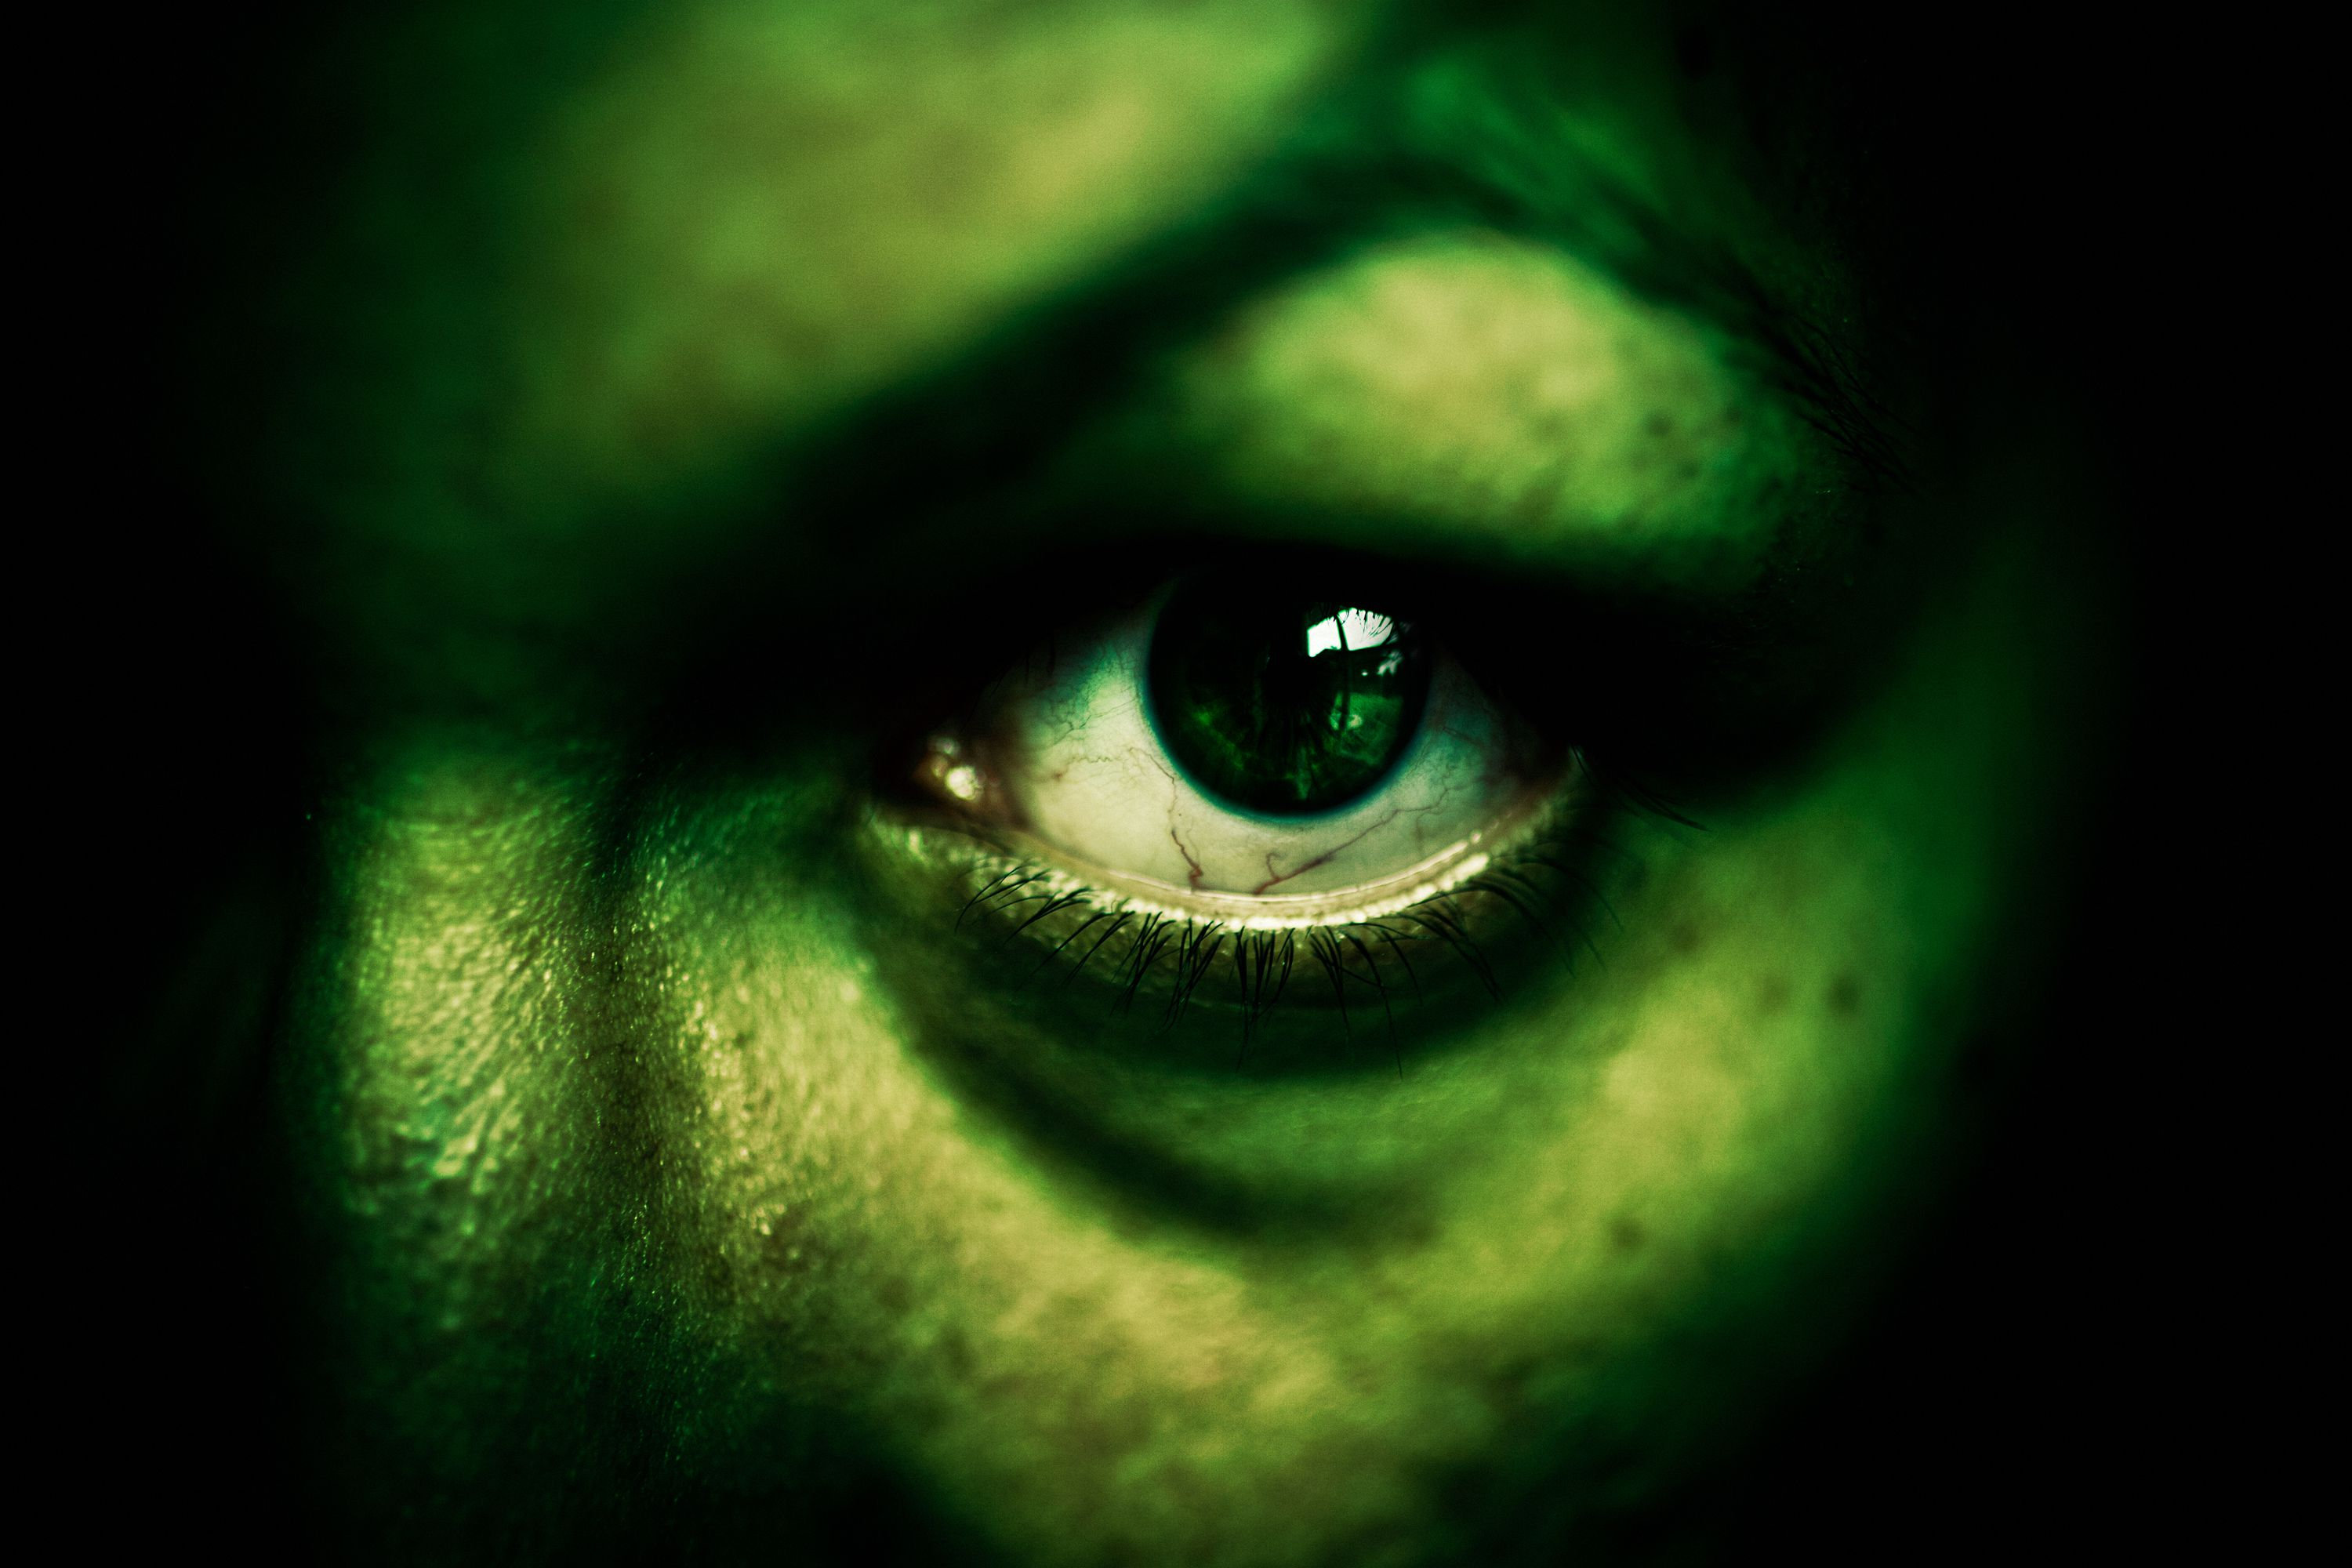 wicked definition: bible study on wickedness